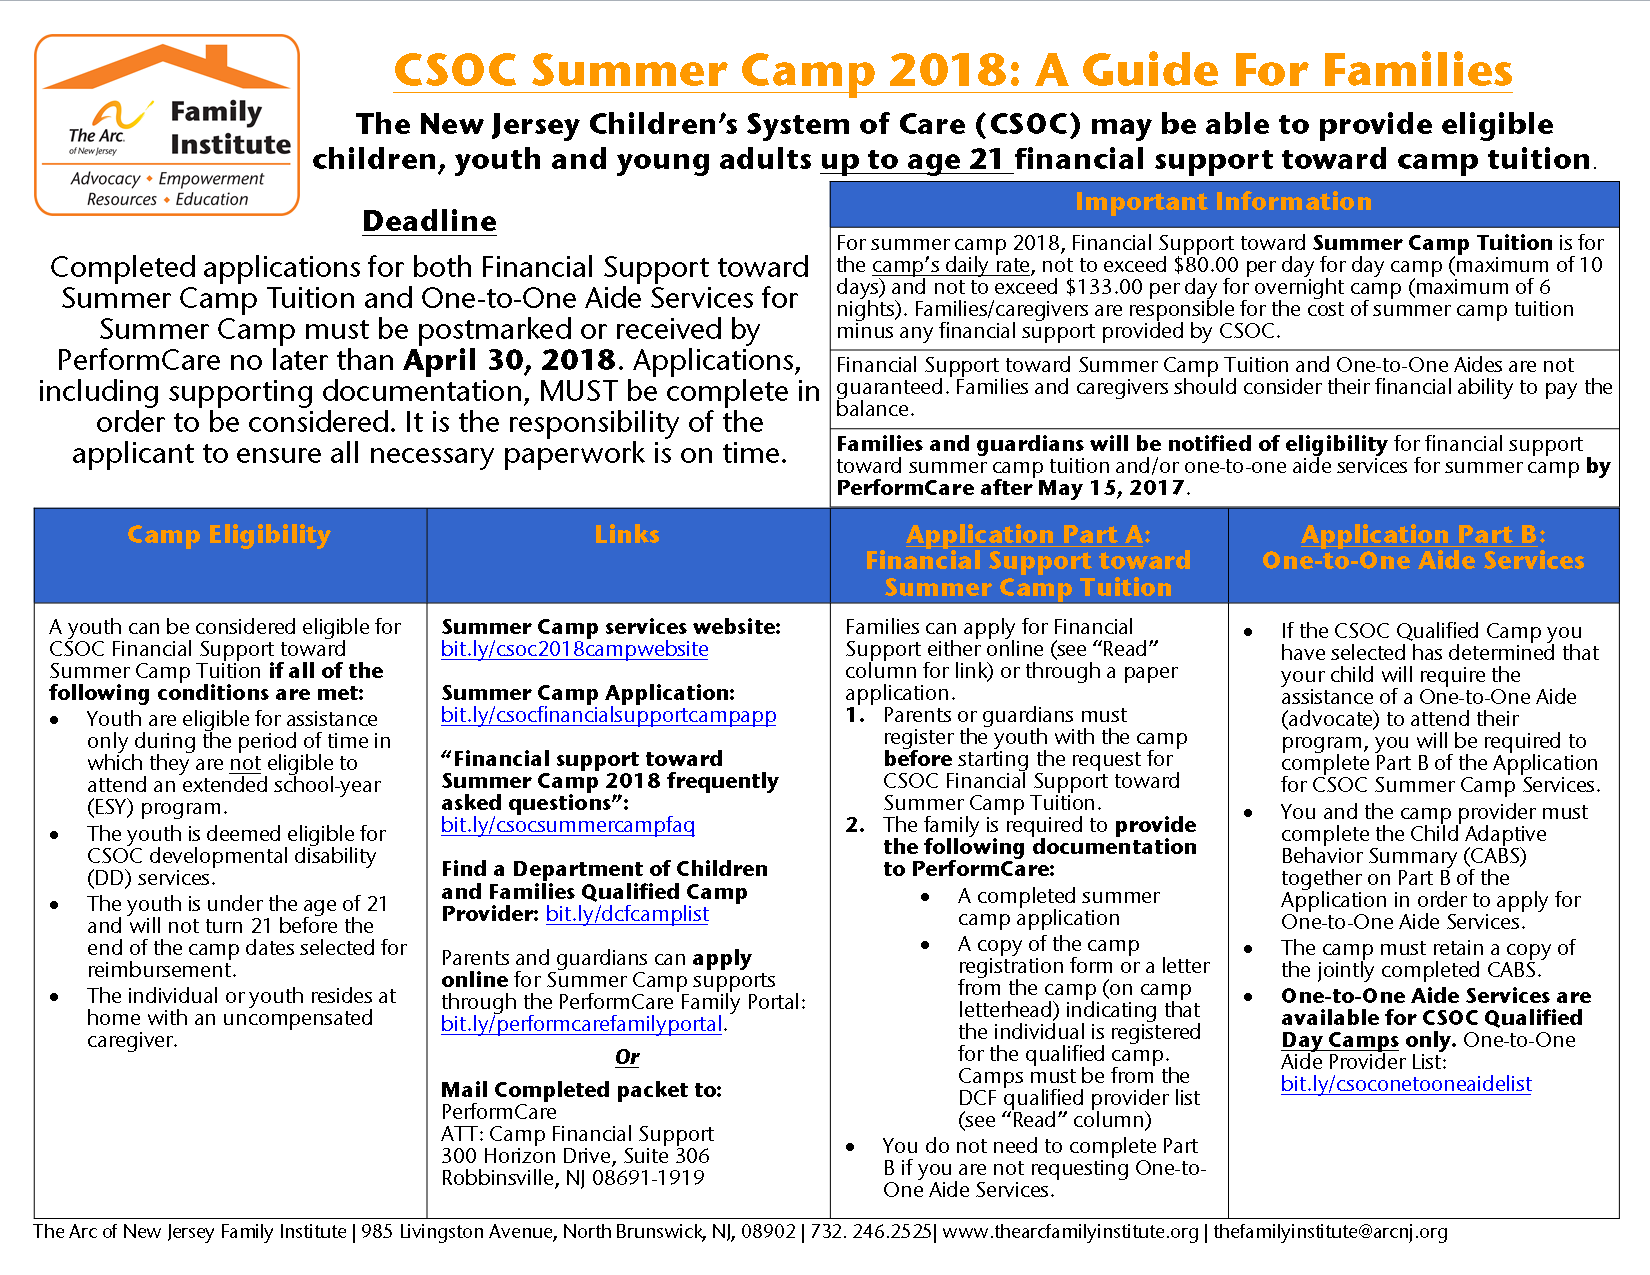 CSOC Summer Camp 2018: A Guide For Families